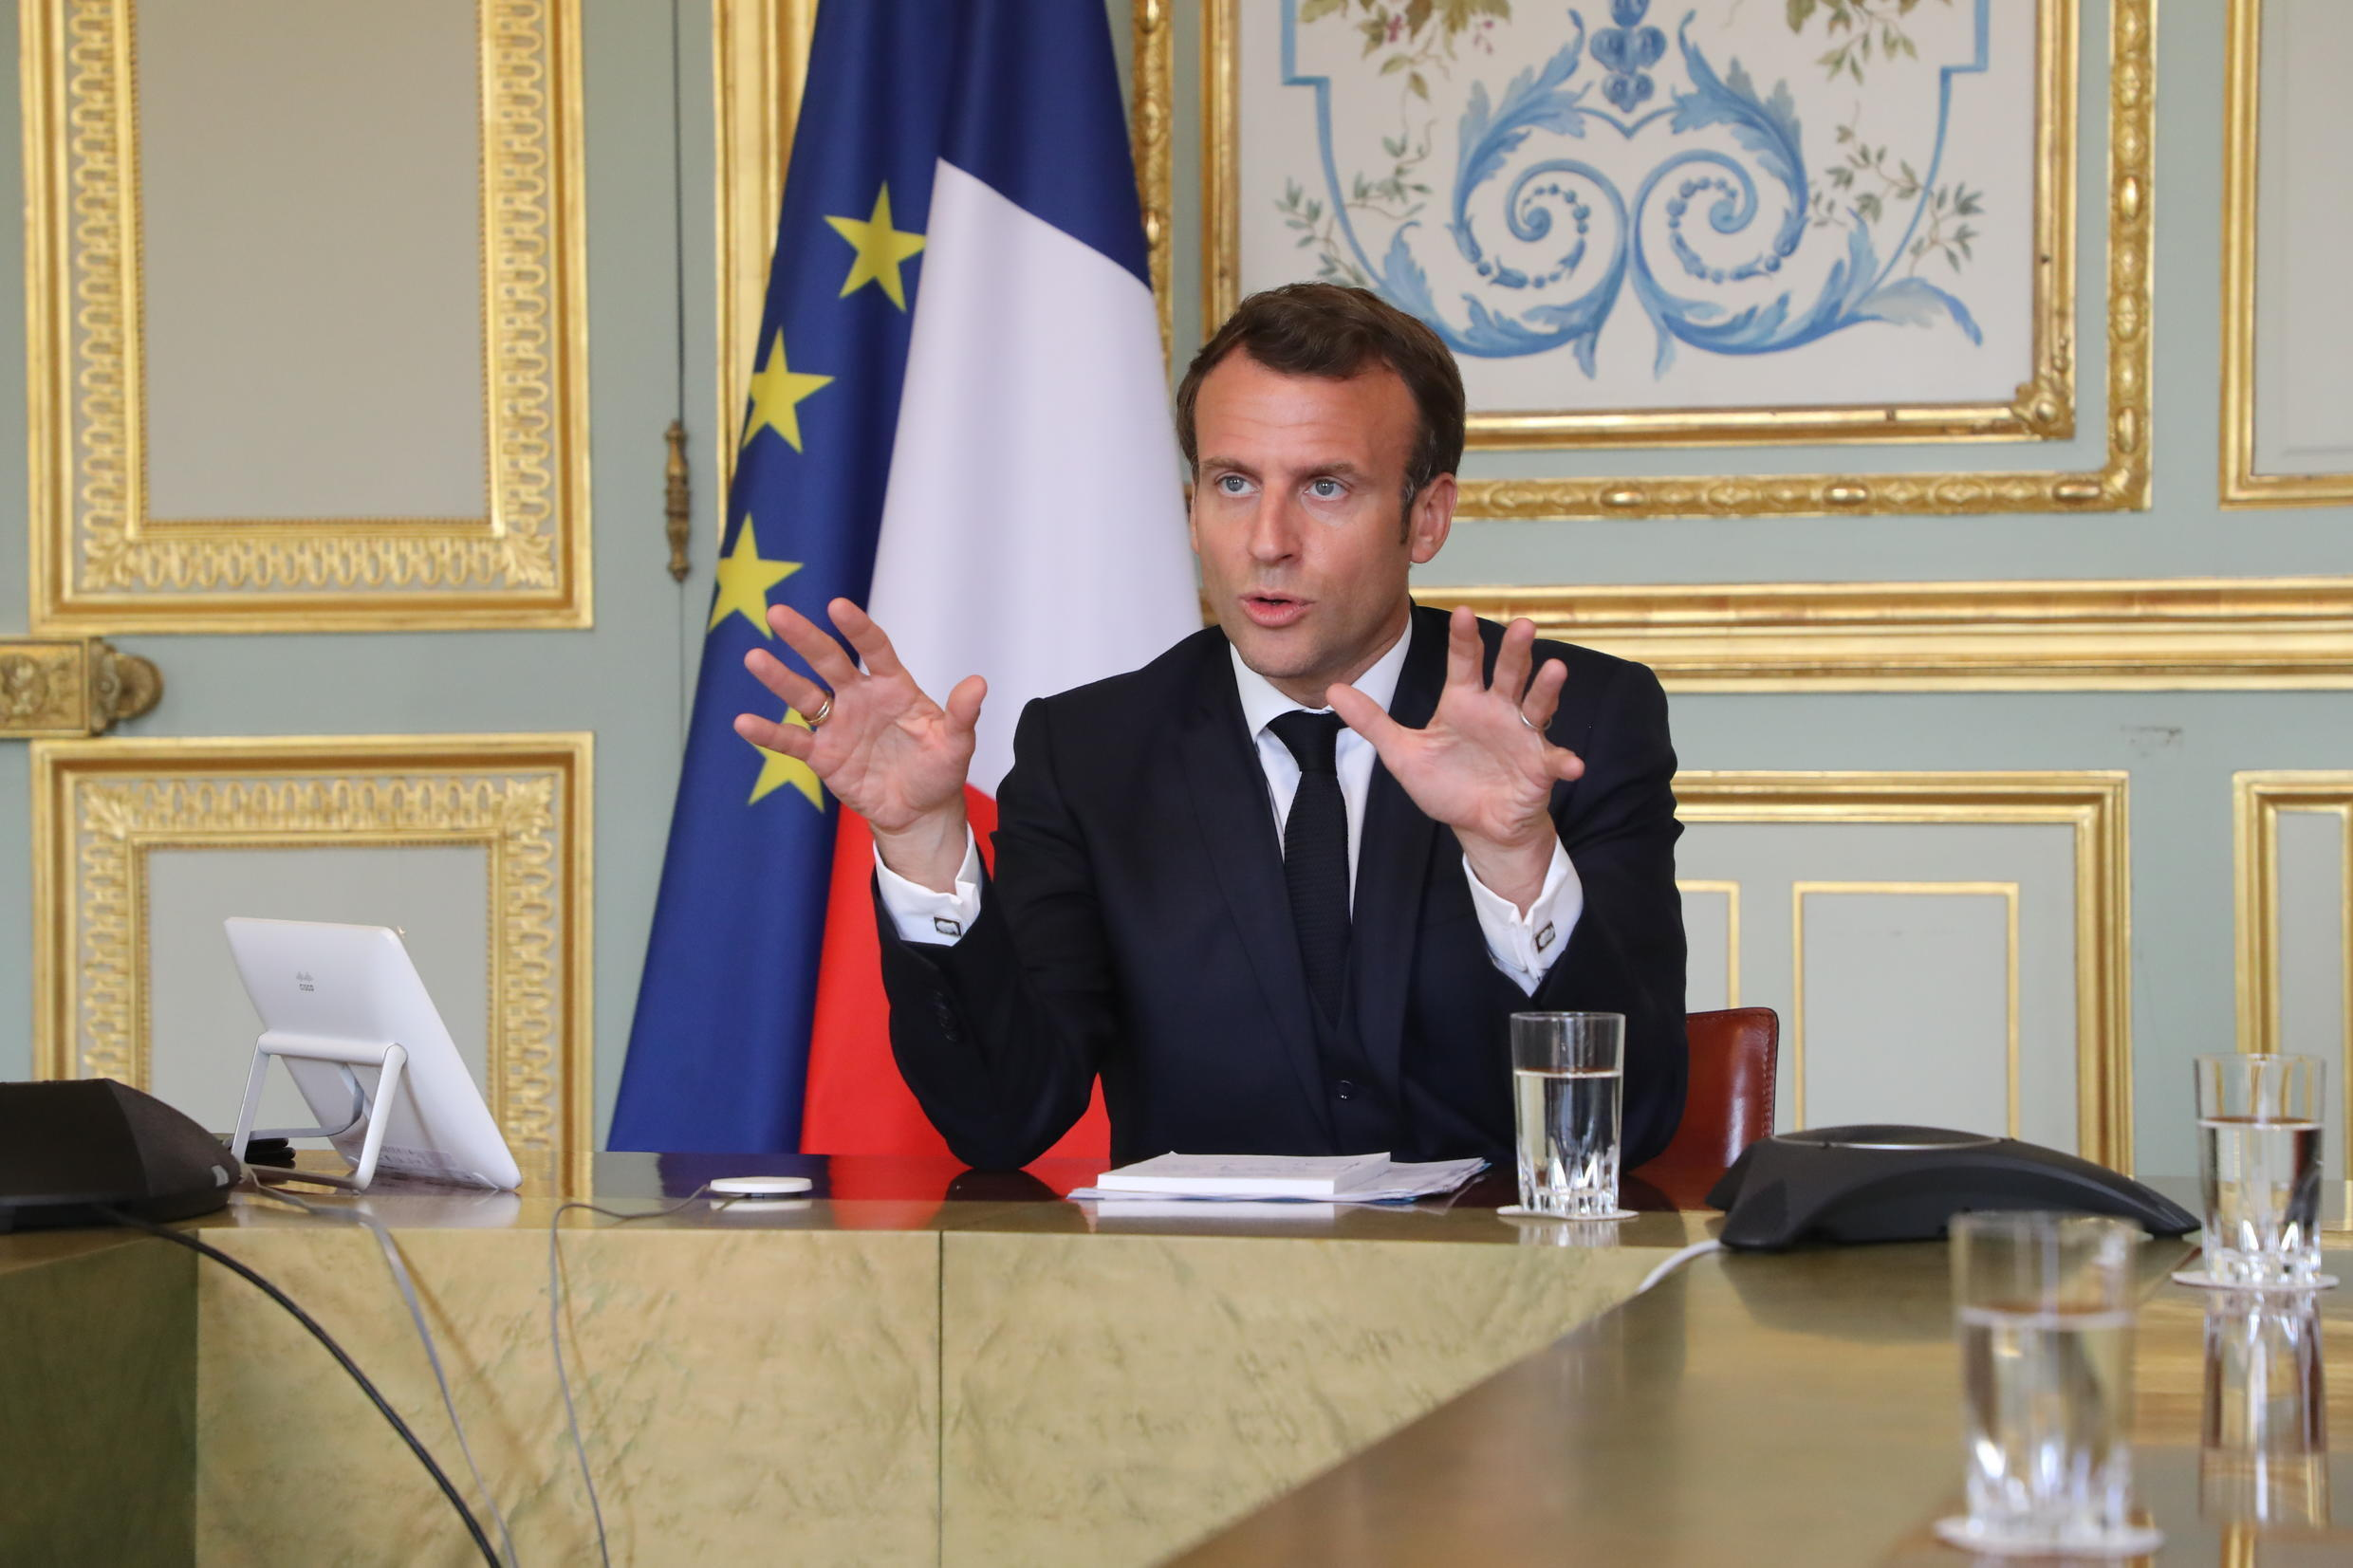 This will be the third time Macron has addressed the nation live on television since the crisis began